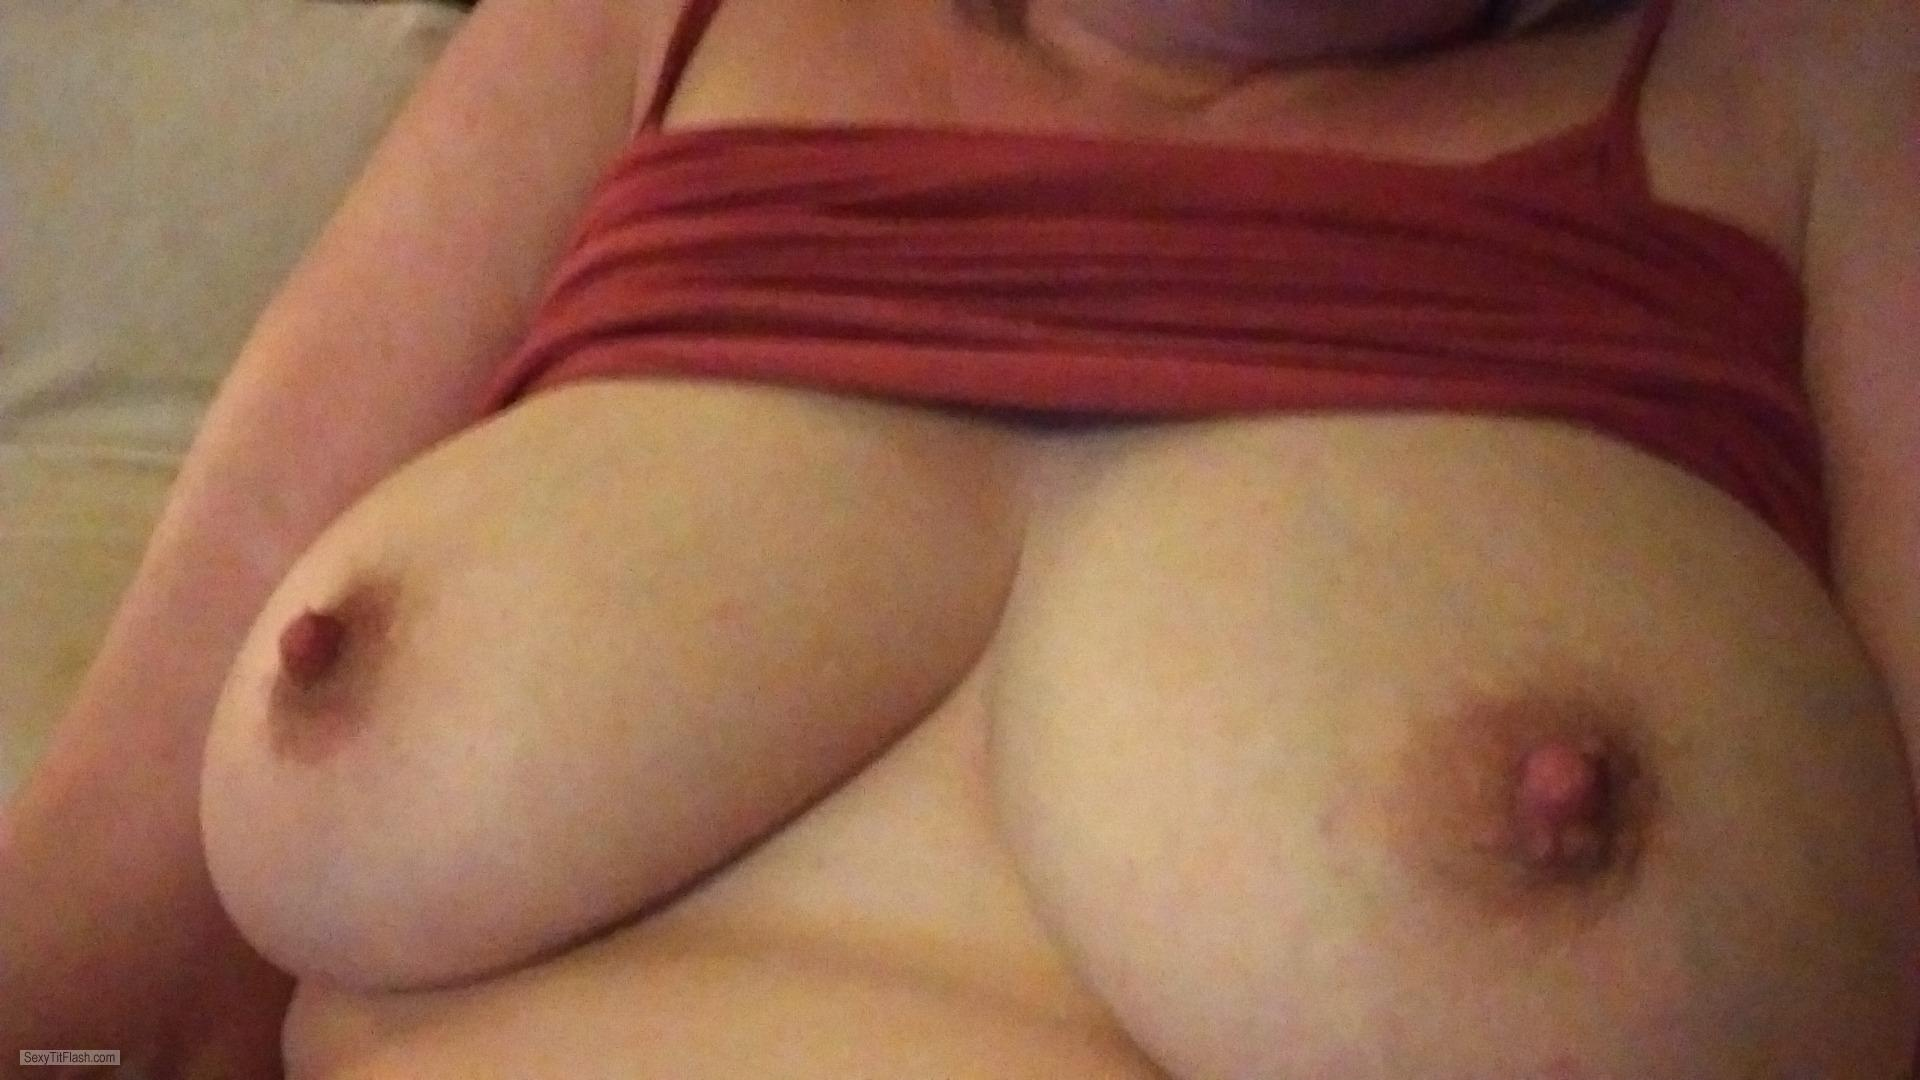 Tit Flash: My Medium Tits - Ellens Boobs, Late Forties from United Kingdom